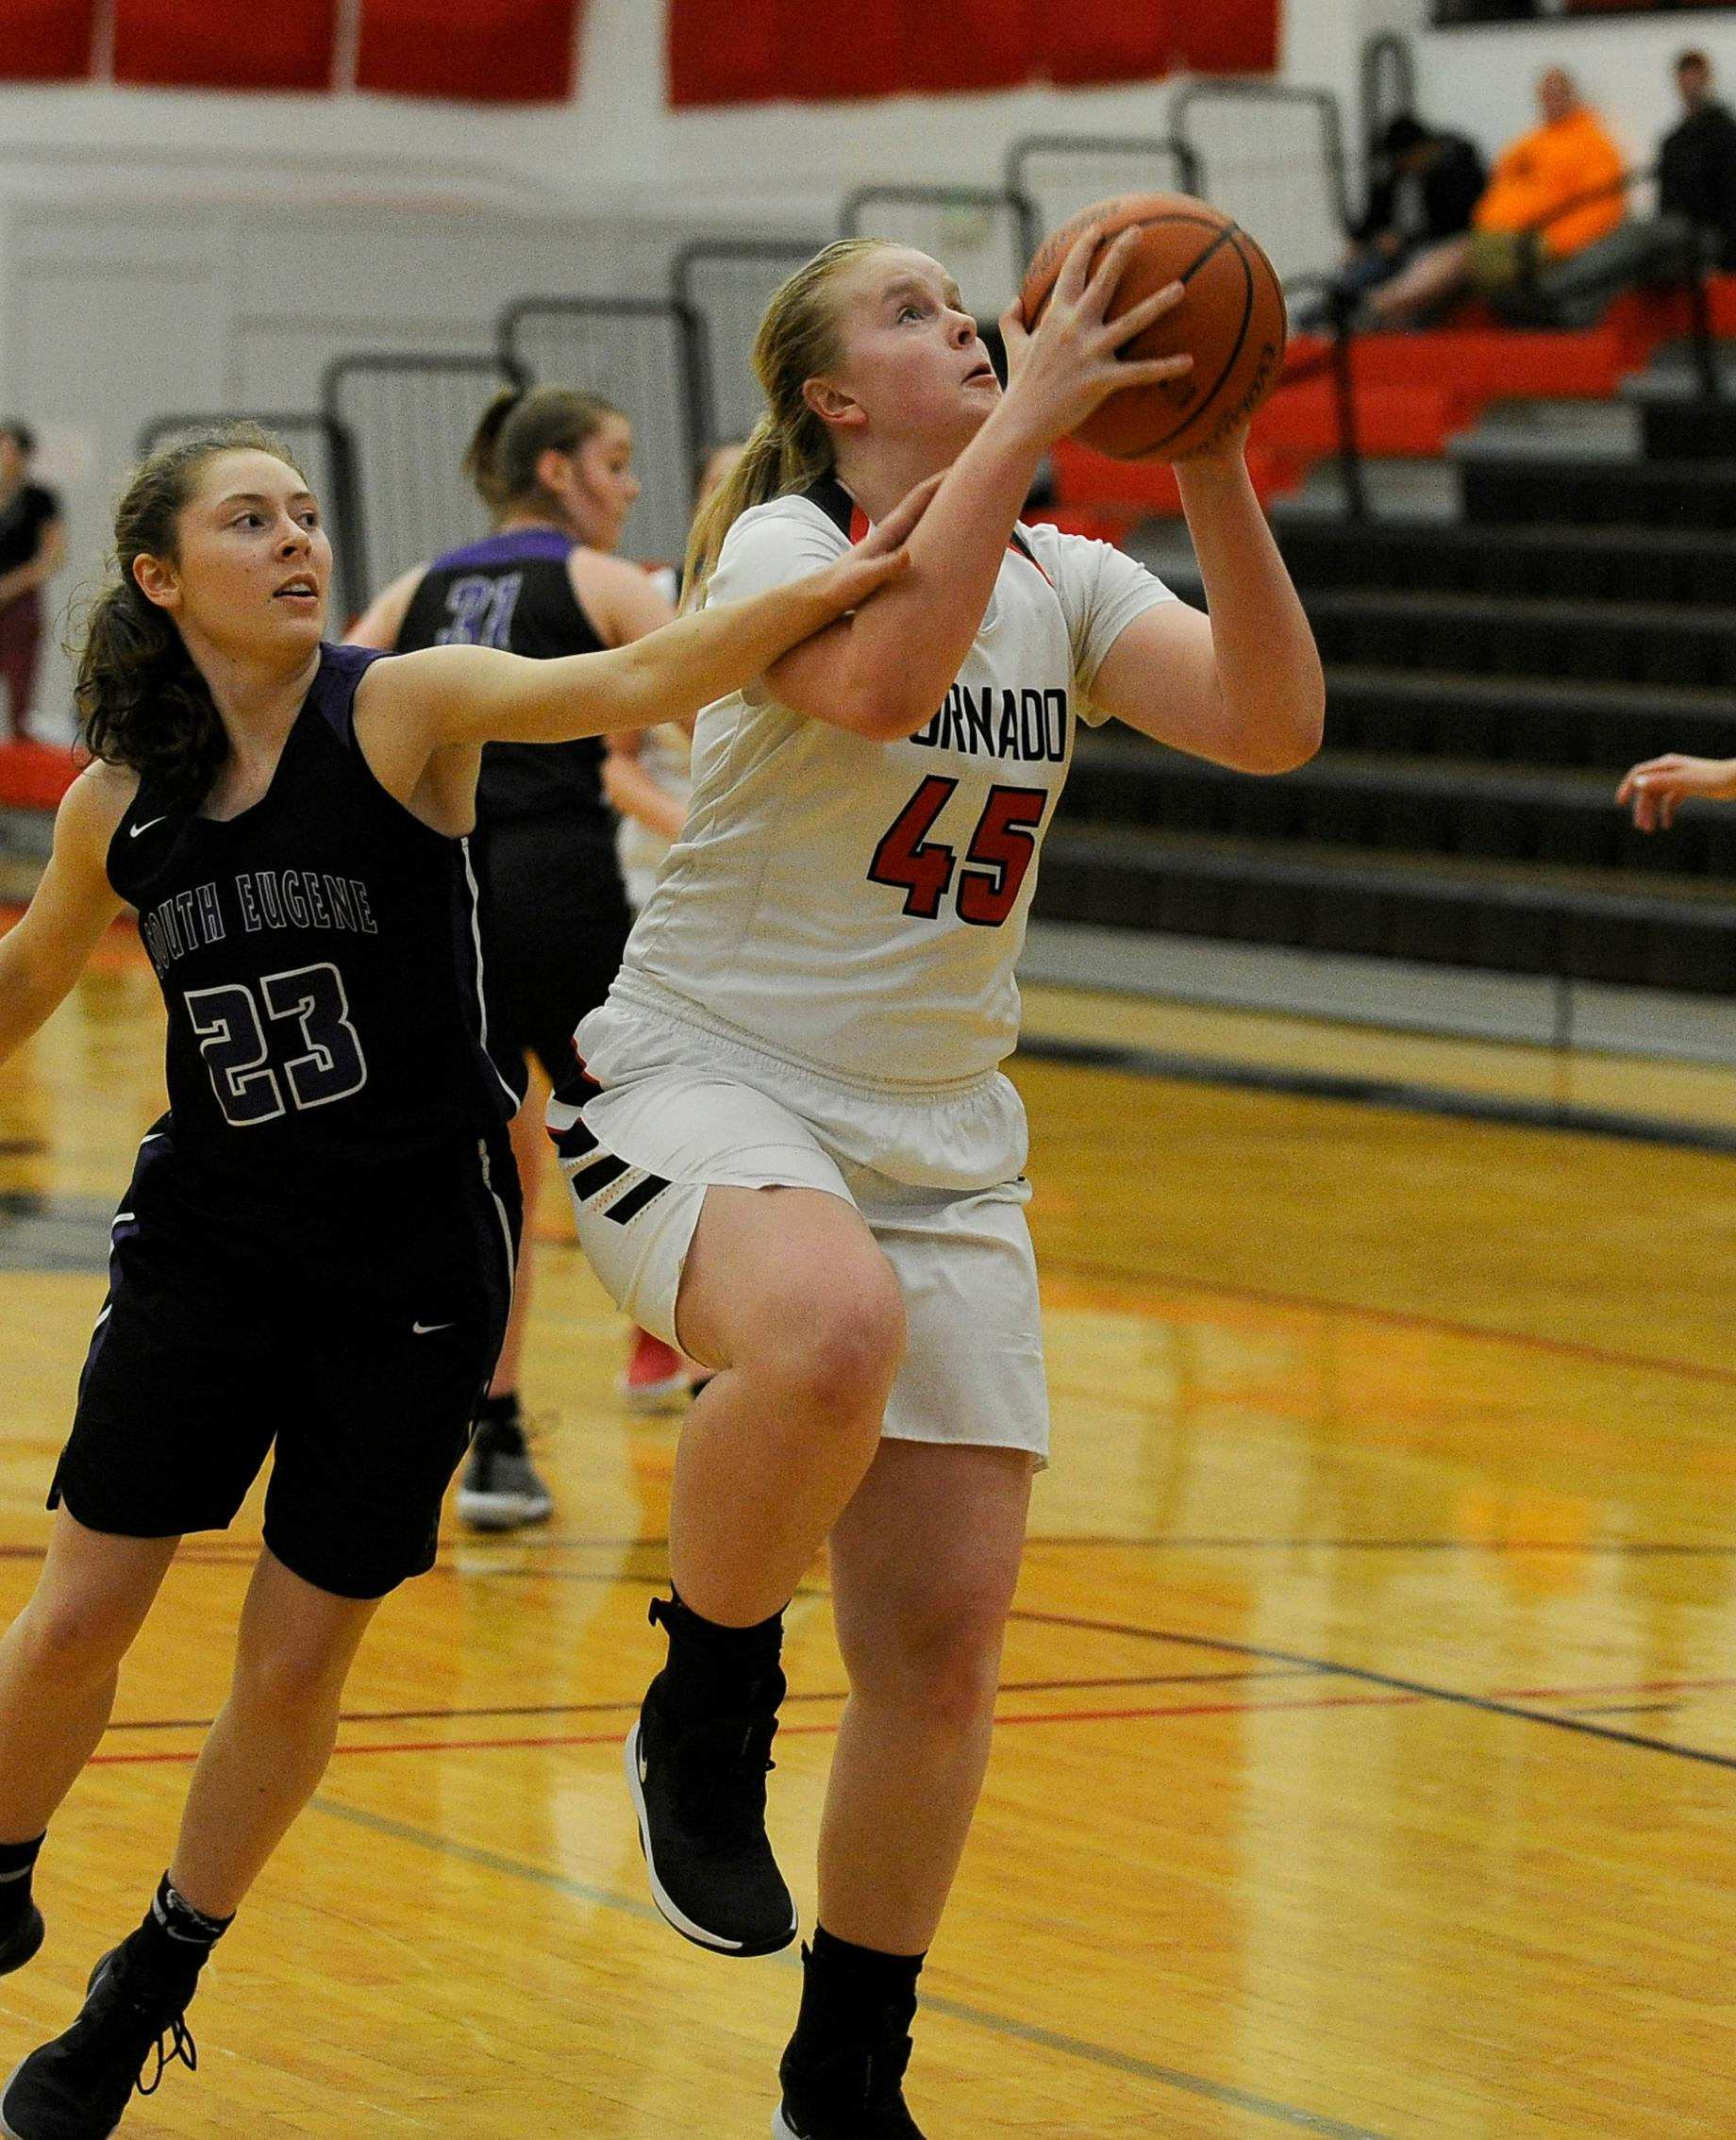 Andy Atkinson / Mail TribuneNorth's Hannah Drysdale drives to the hoop in the 2nd quarter.